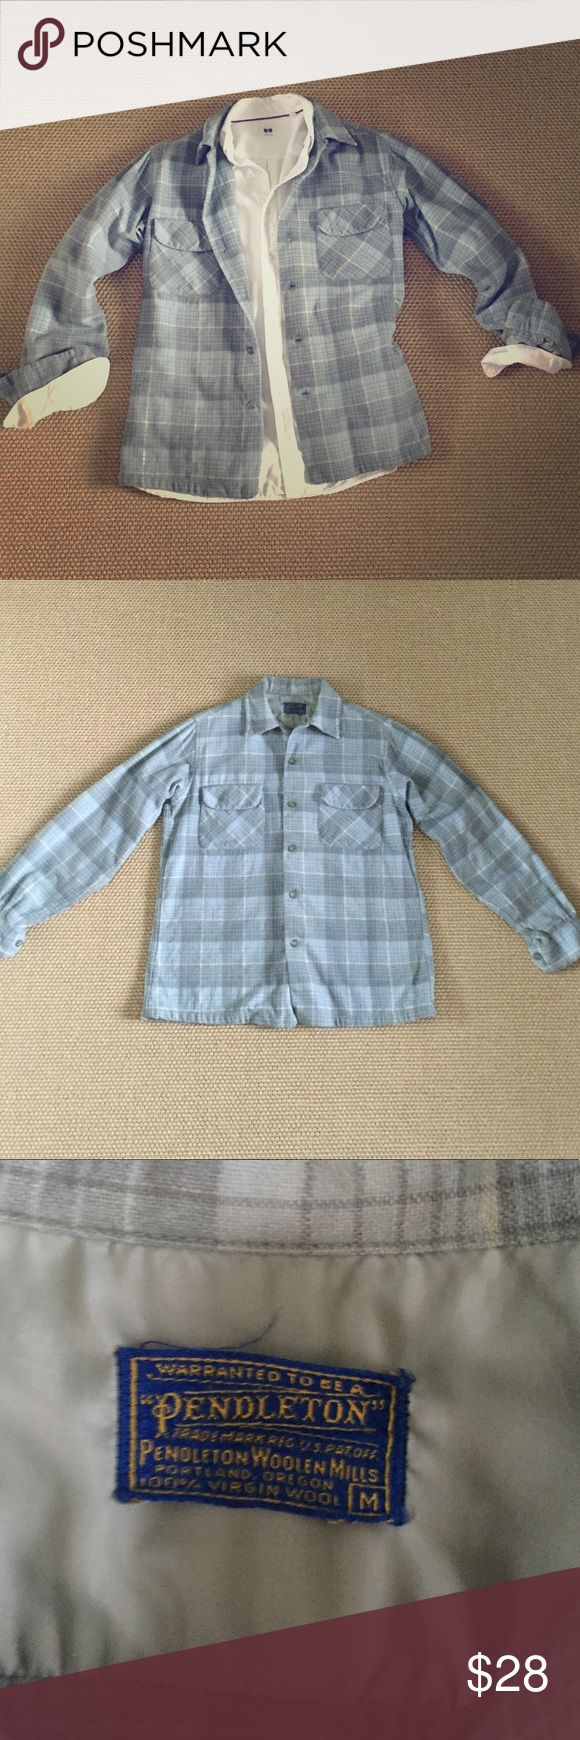 Men's Pendleton Plaid Wool Shirt This vintage men's Pendleton shirt can be warn as a light jacket or shirt. In great condition. No holes or rips. Vintage Pendleton clothing is made to last!  Size medium. Pendleton Shirts Casual Button Down Shirts